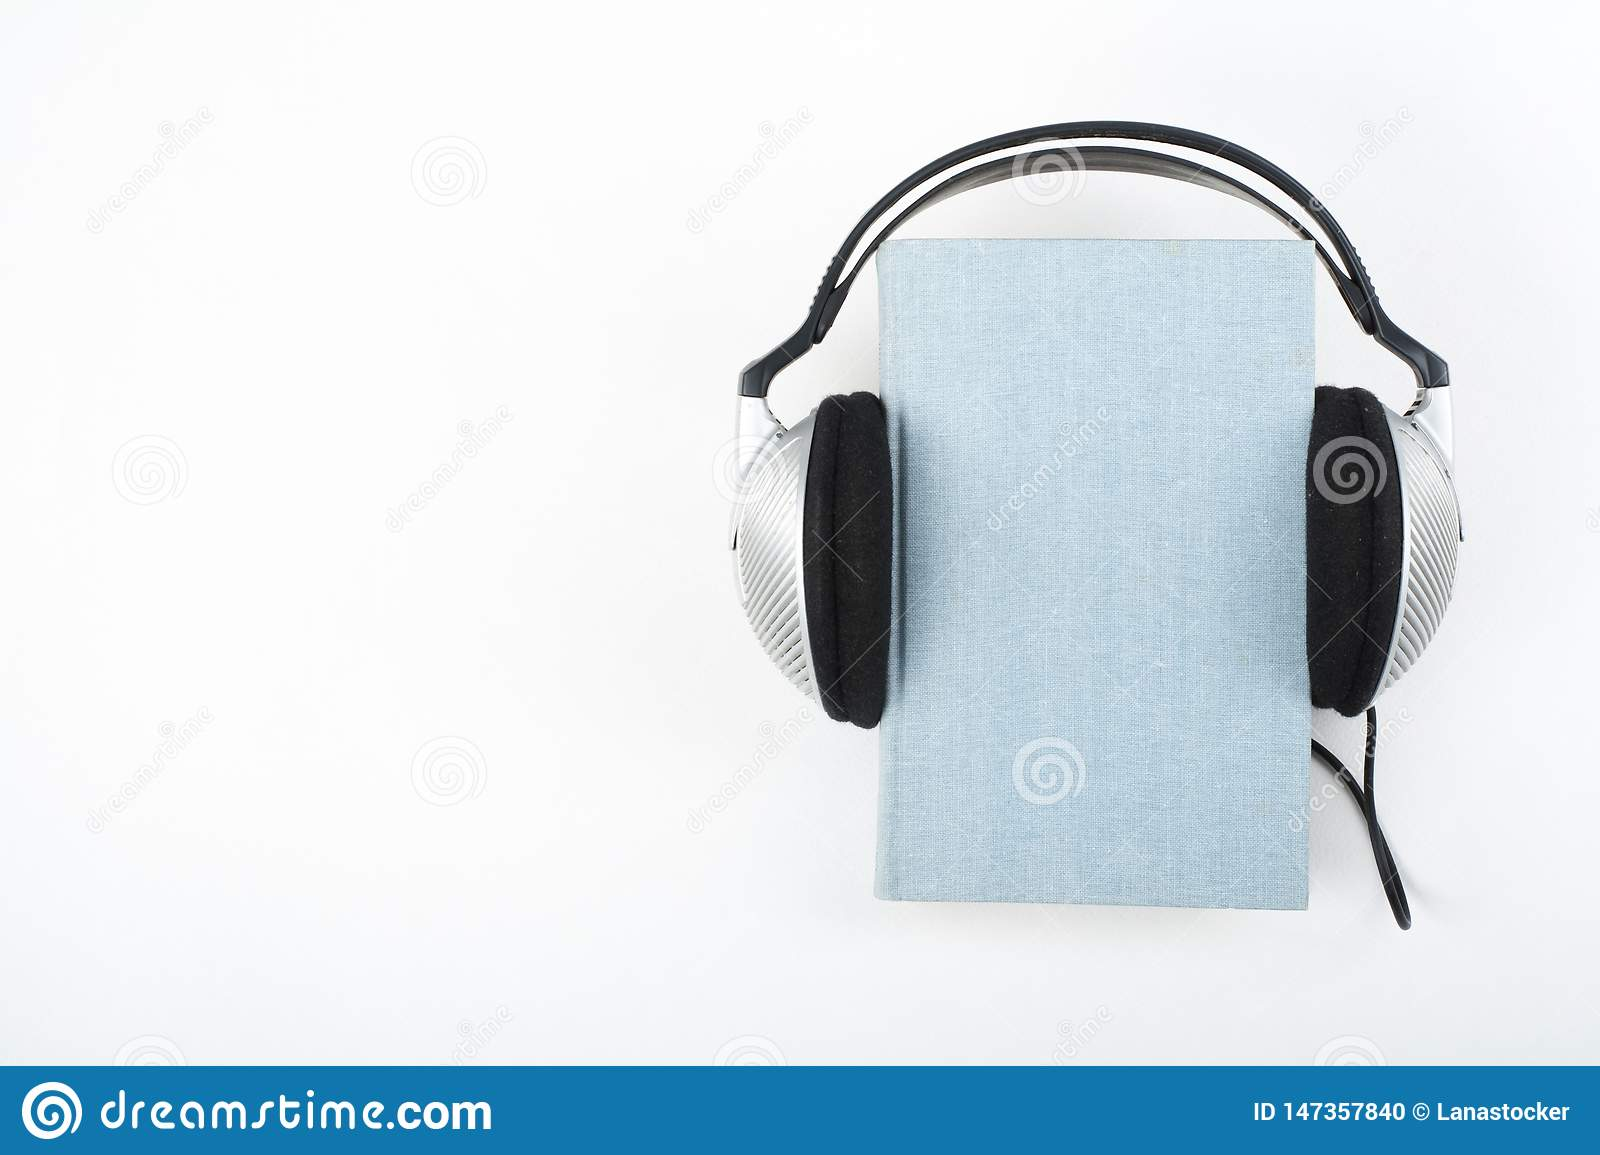 Audiobook on white background. Headphones put over blue hardback book, empty cover, copy space for ad text. Distance